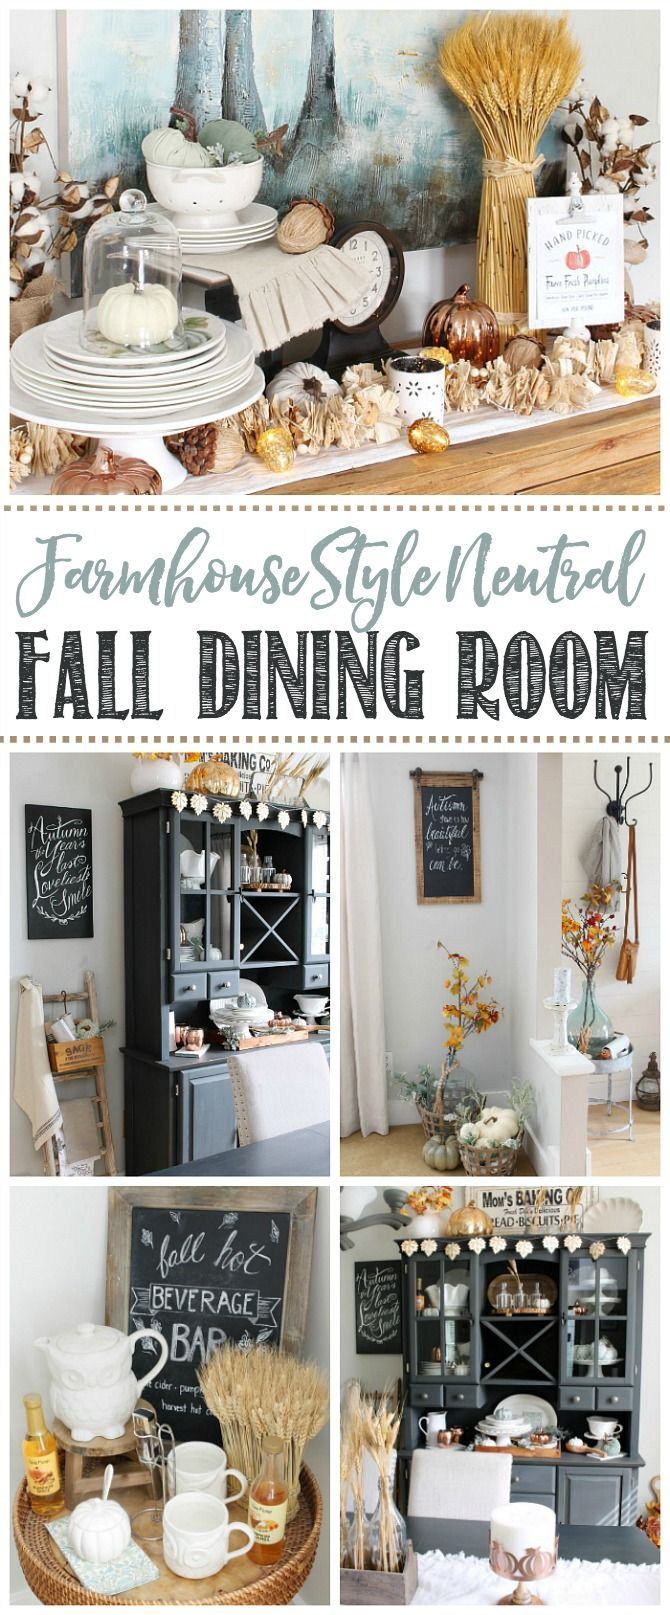 Farmhouse style fall dining room. Lots of fall decor inspiration using  neutrals and natural elements. #falldiningroom #diningroom #falldecor ...